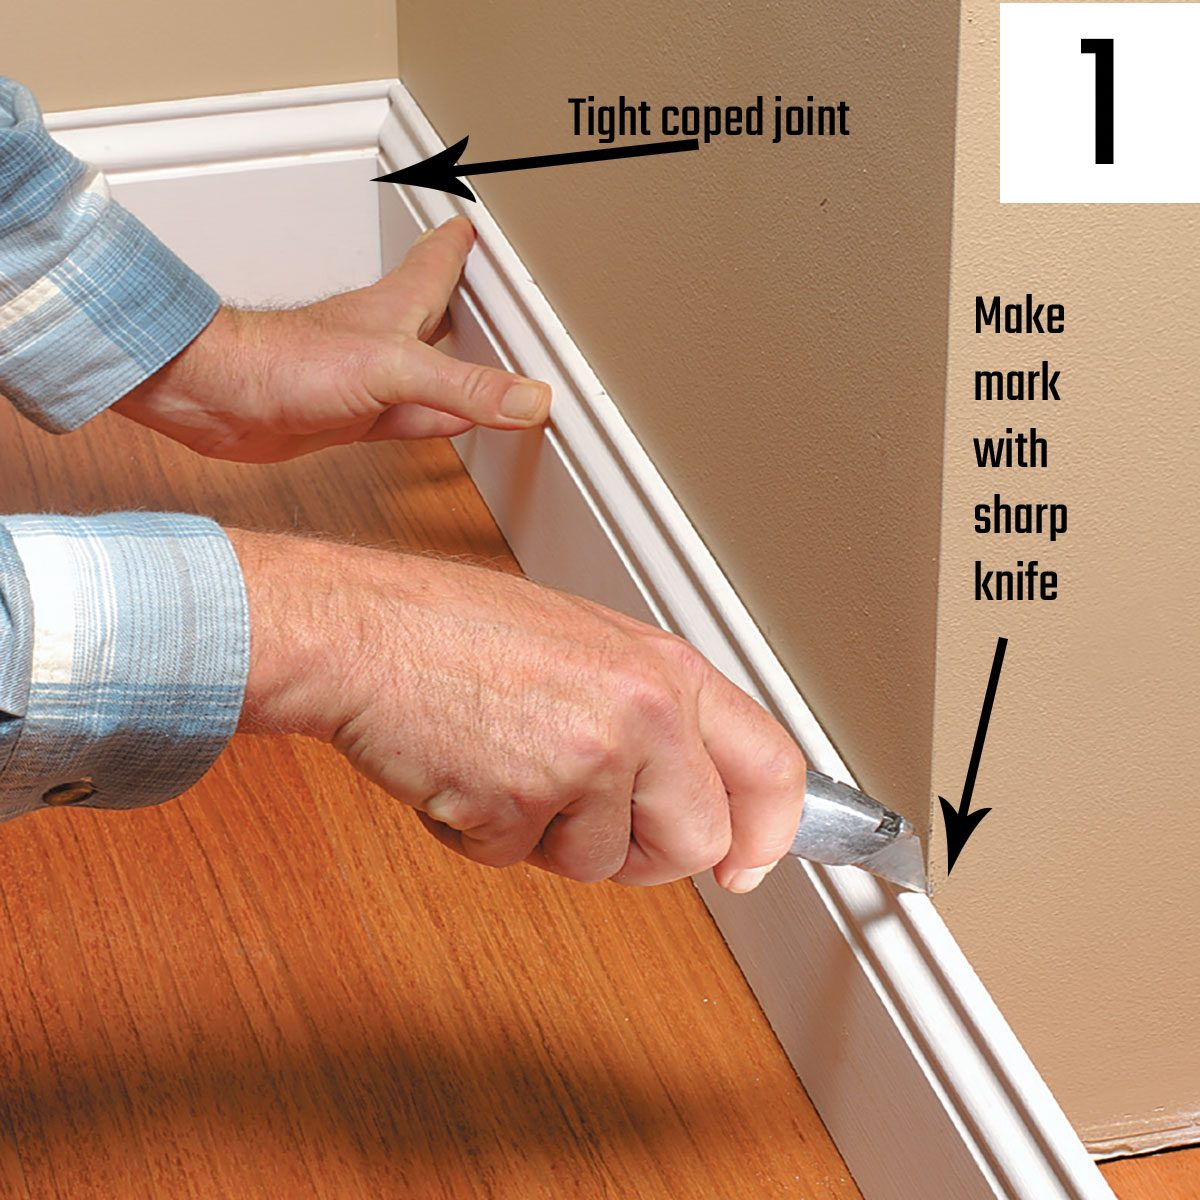 Marking a piece of trim with a utility knife   Construction Pro Tips